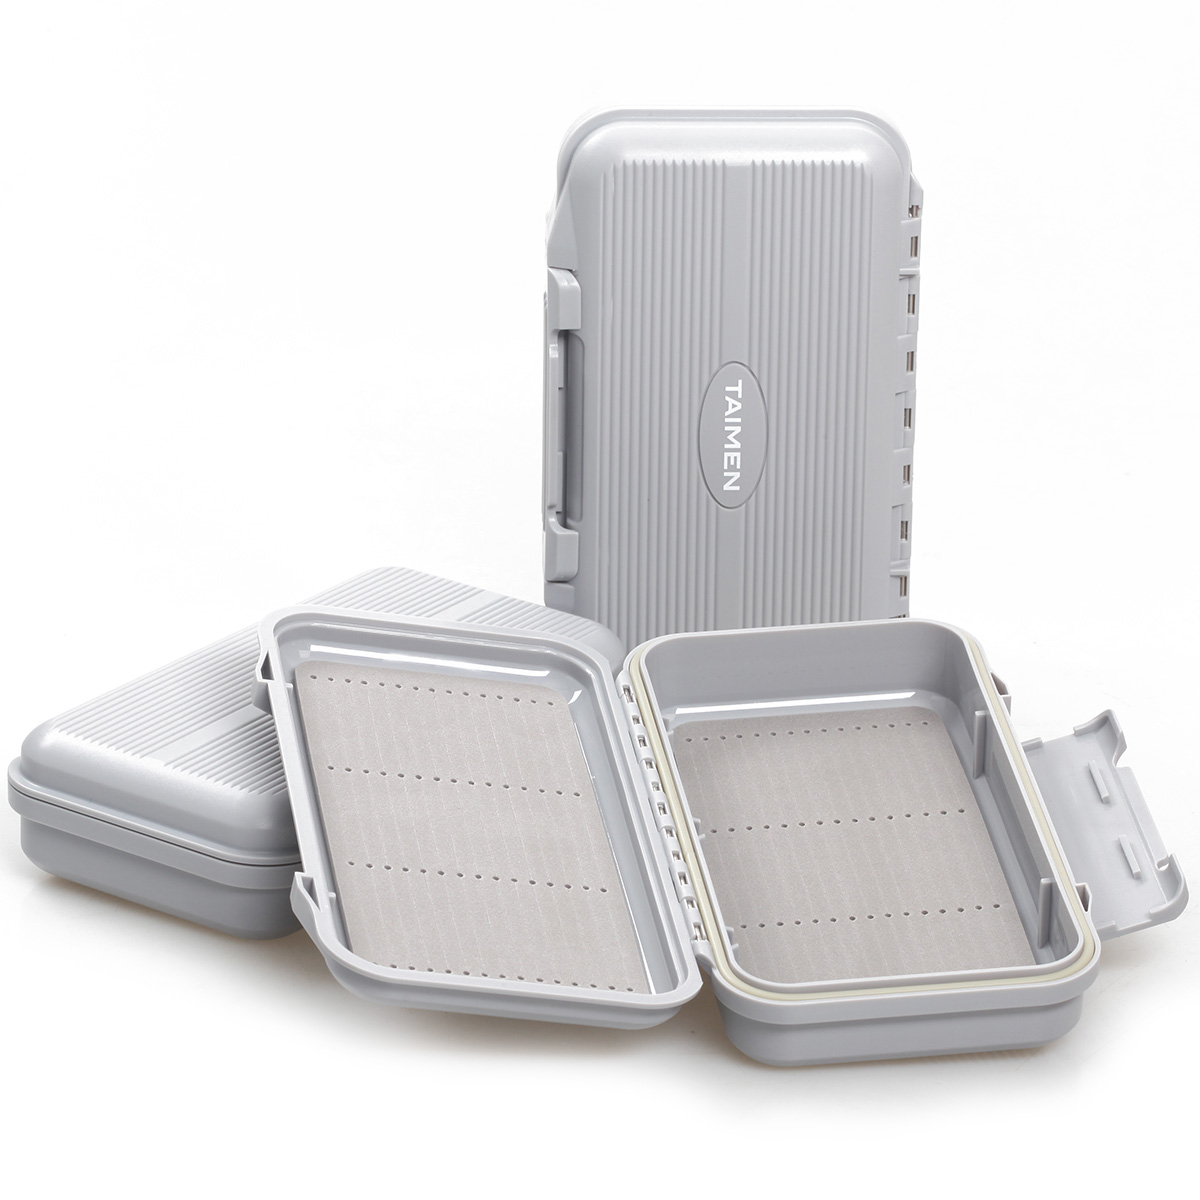 Taimen Waterproof Fly Box 5000